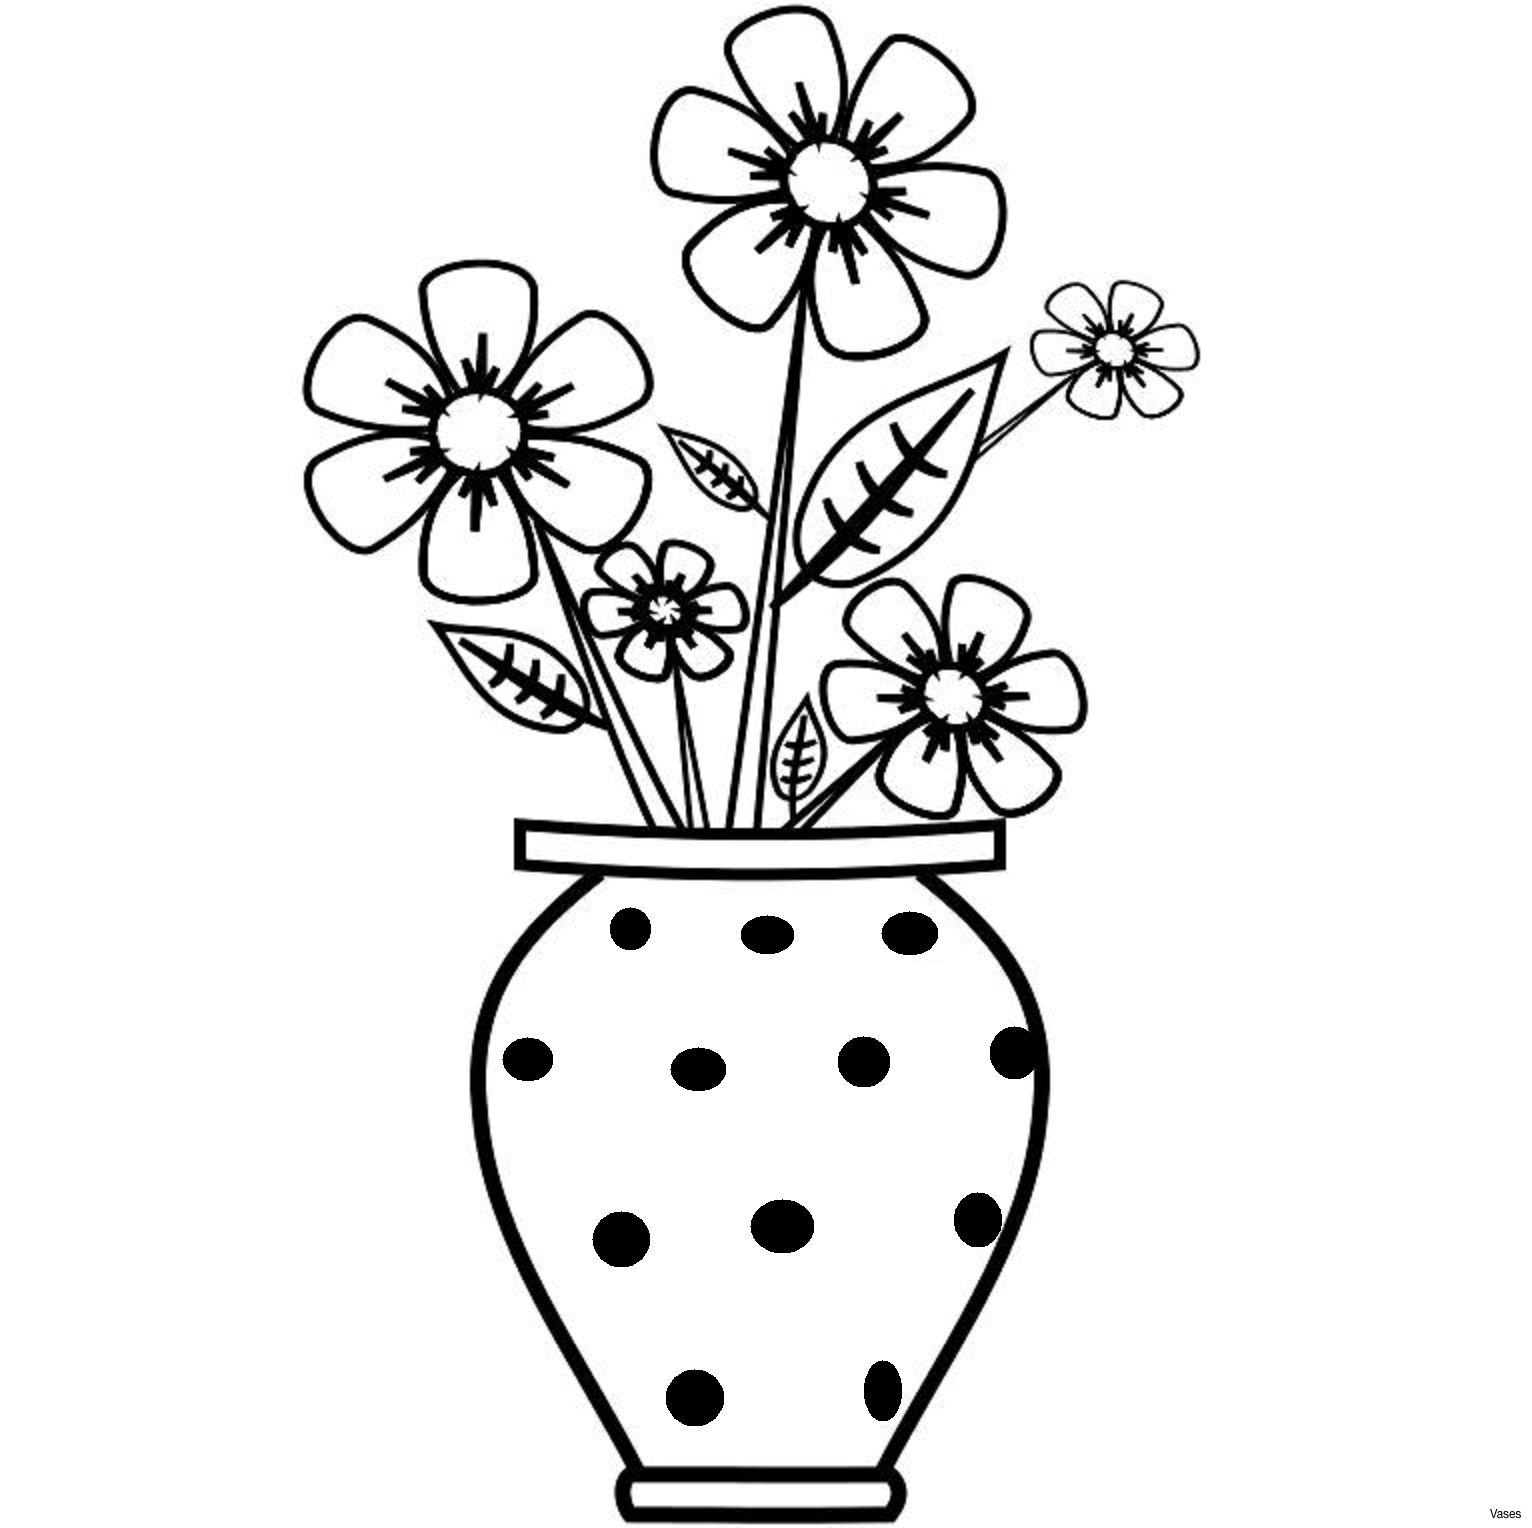 1532x1528 Maxresdefaulth Vases Drawings Of Flower Vase I 5d Drawing Dihizb